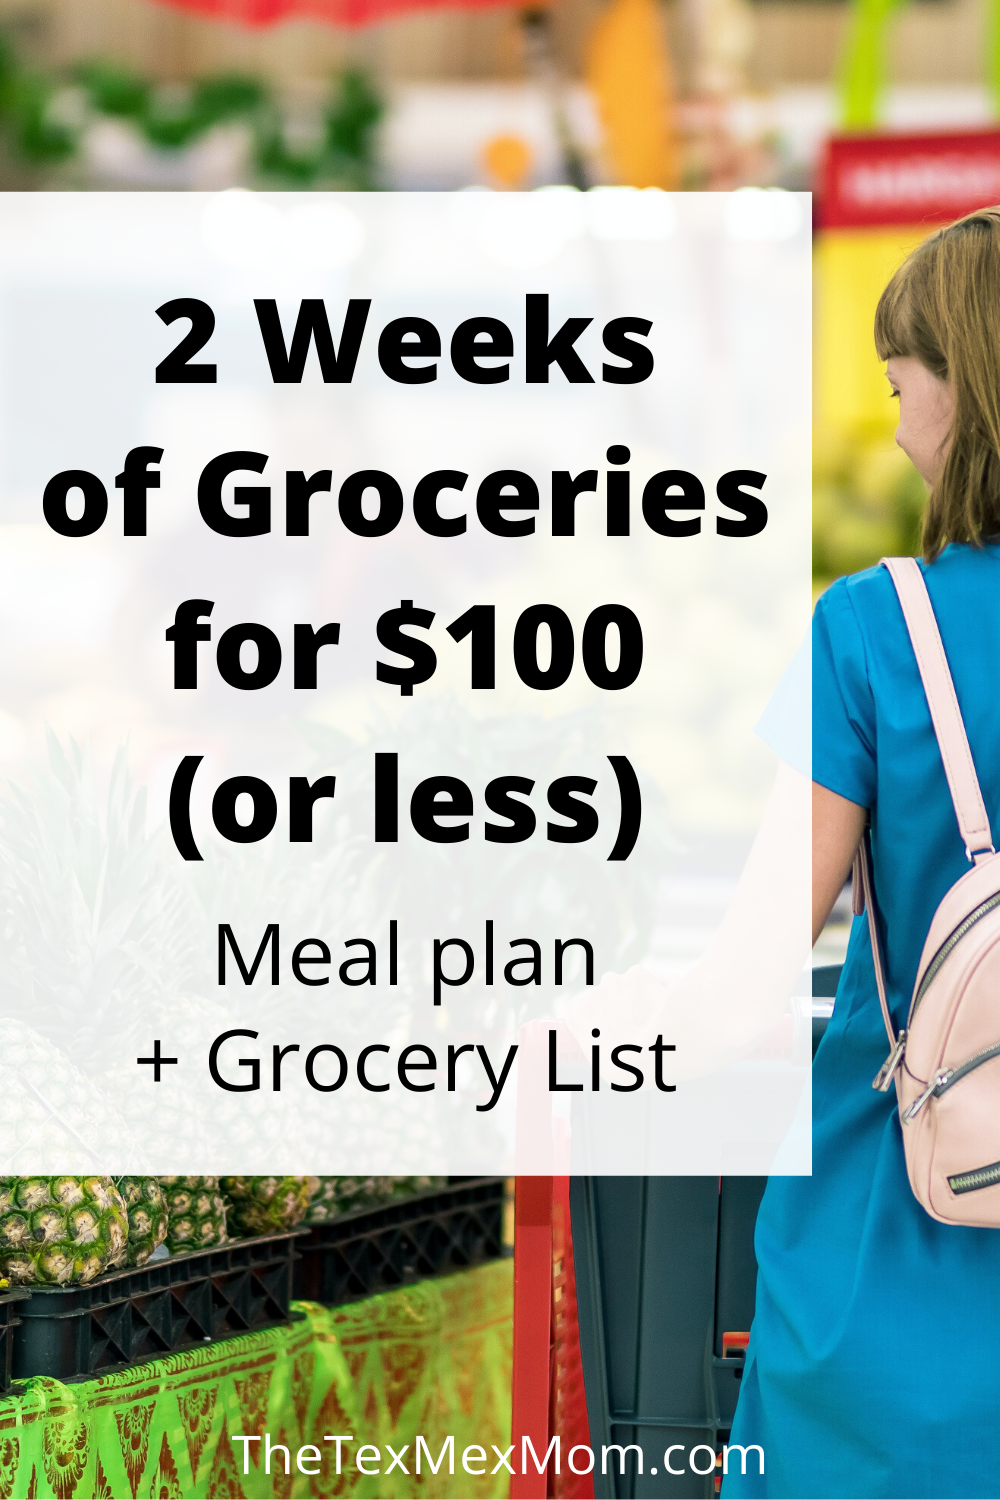 2 weeks of groceries for $100 or less